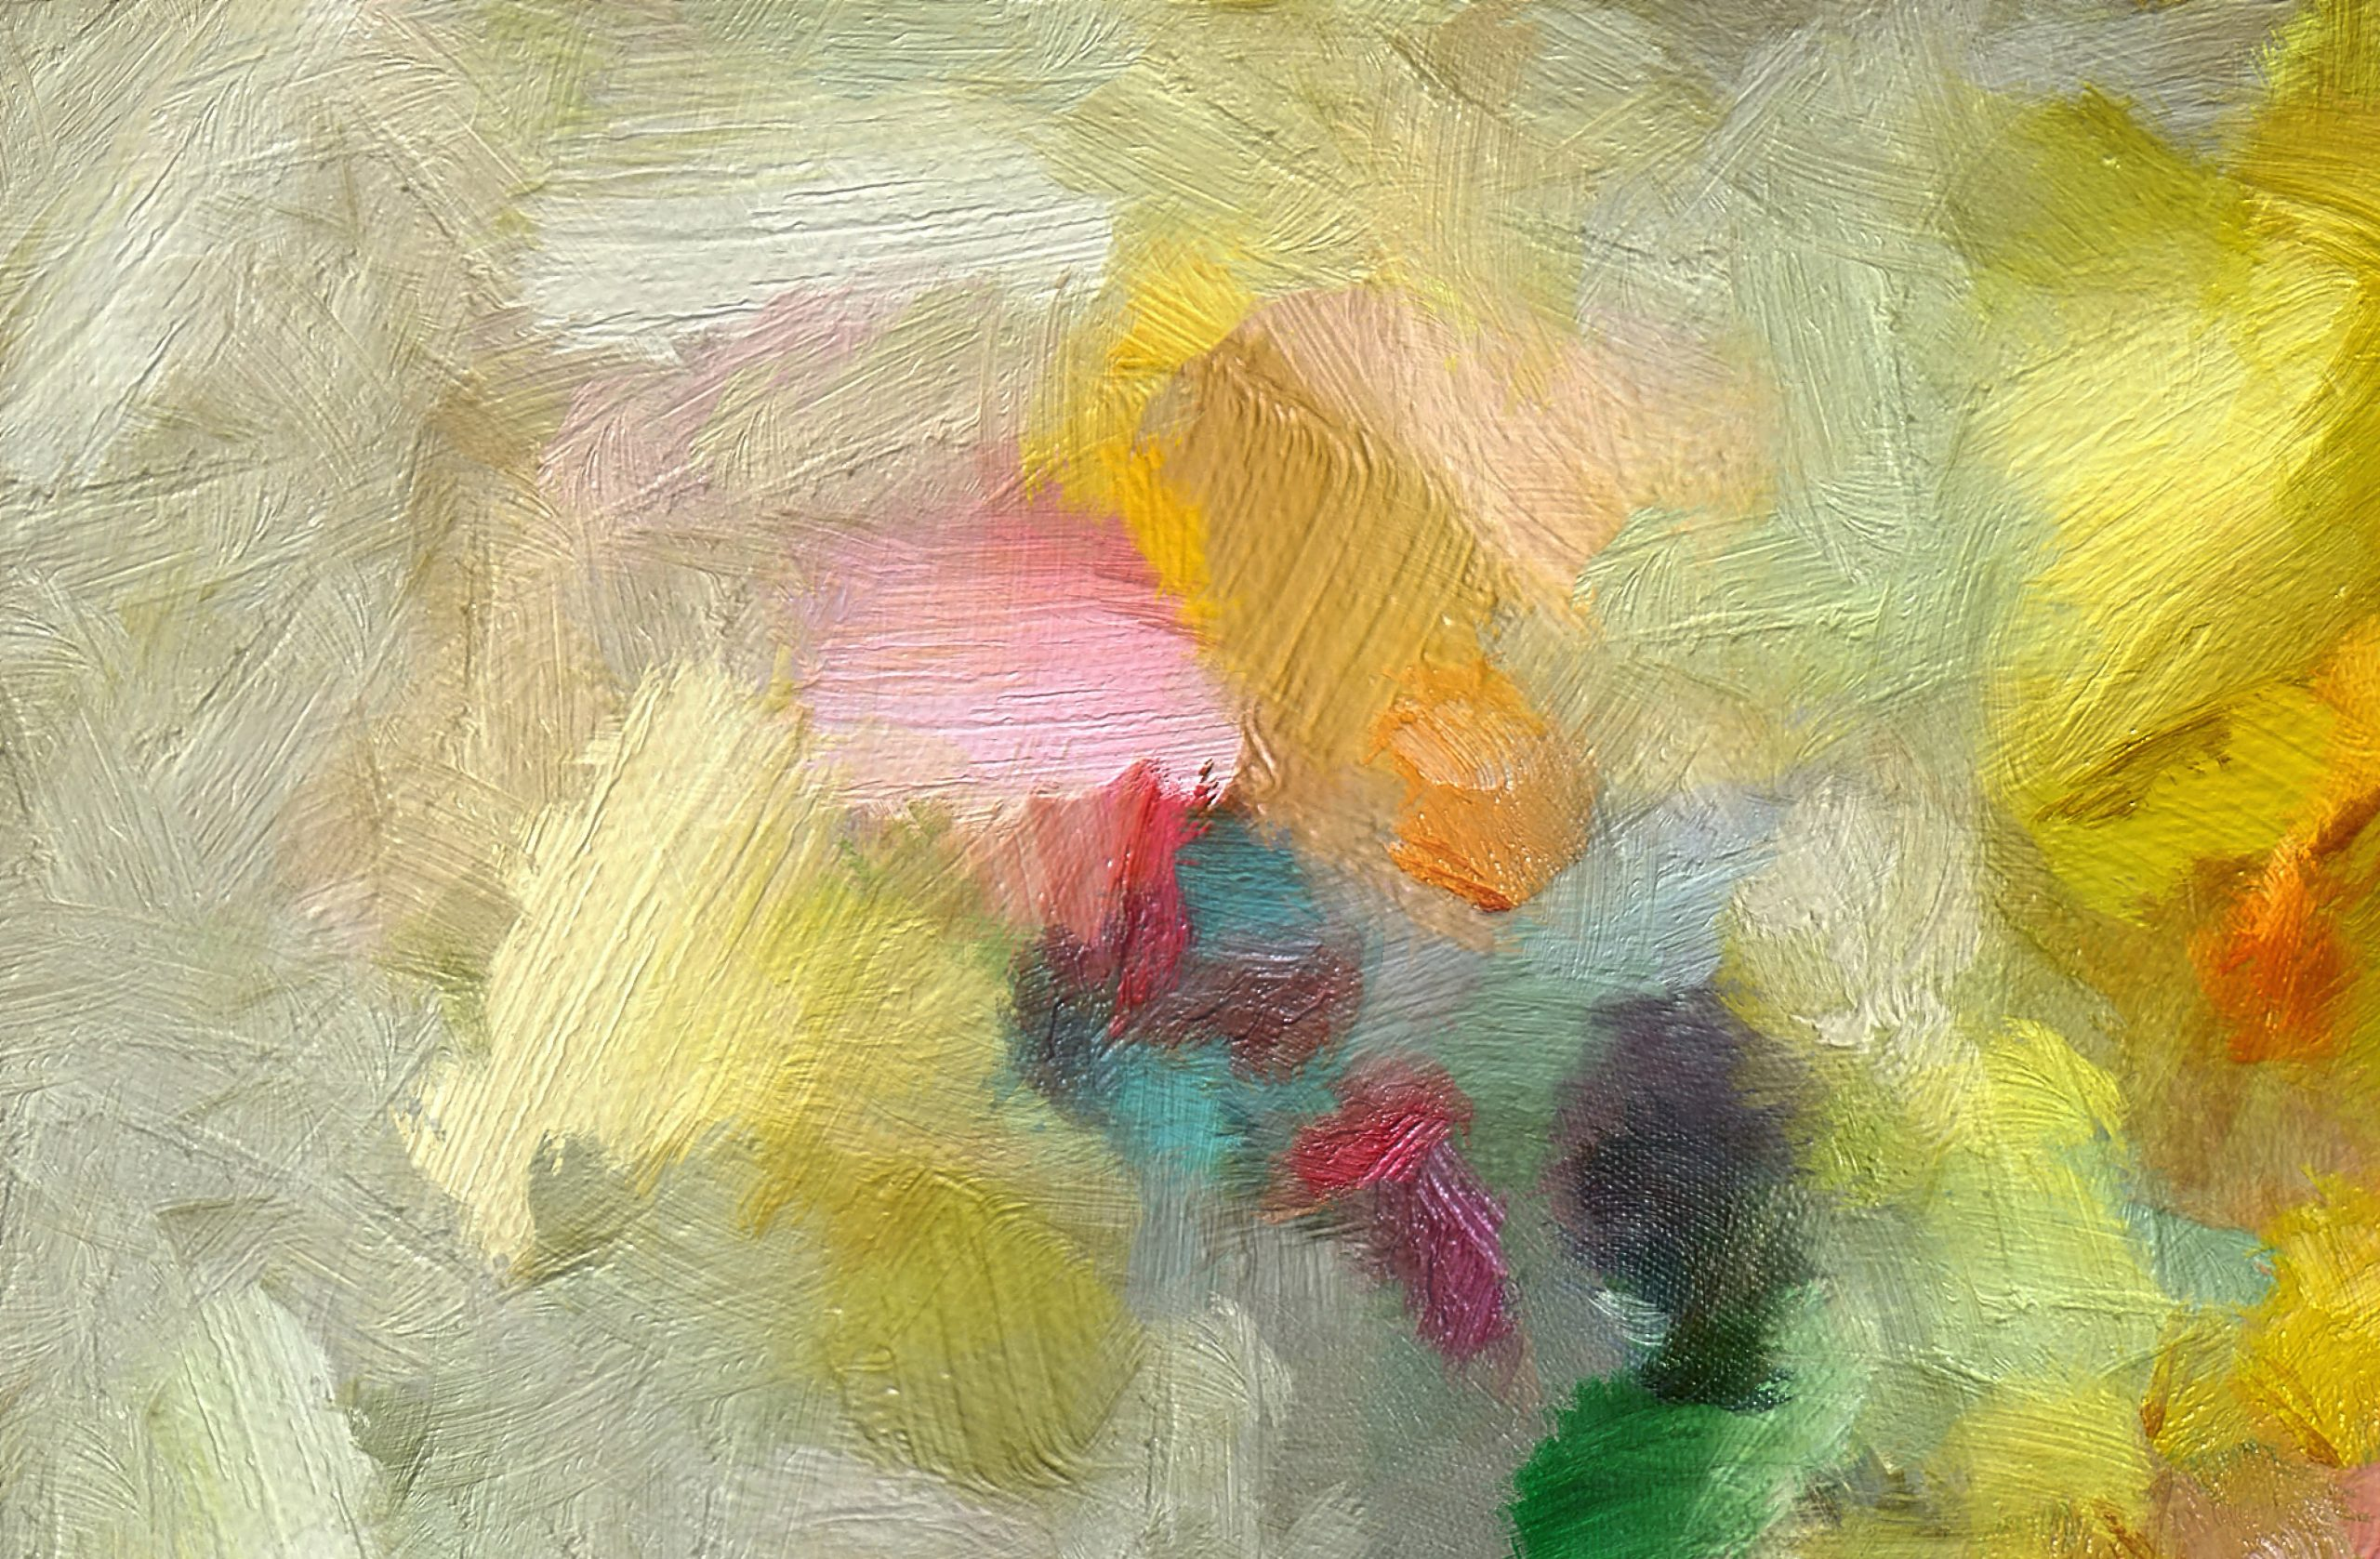 Abstract art for sale, stock. High resolution texture background, pattern for graphic design decor of label, invitation, cards or web banners. Oil paint real strokes. Fine contemporary arts collection